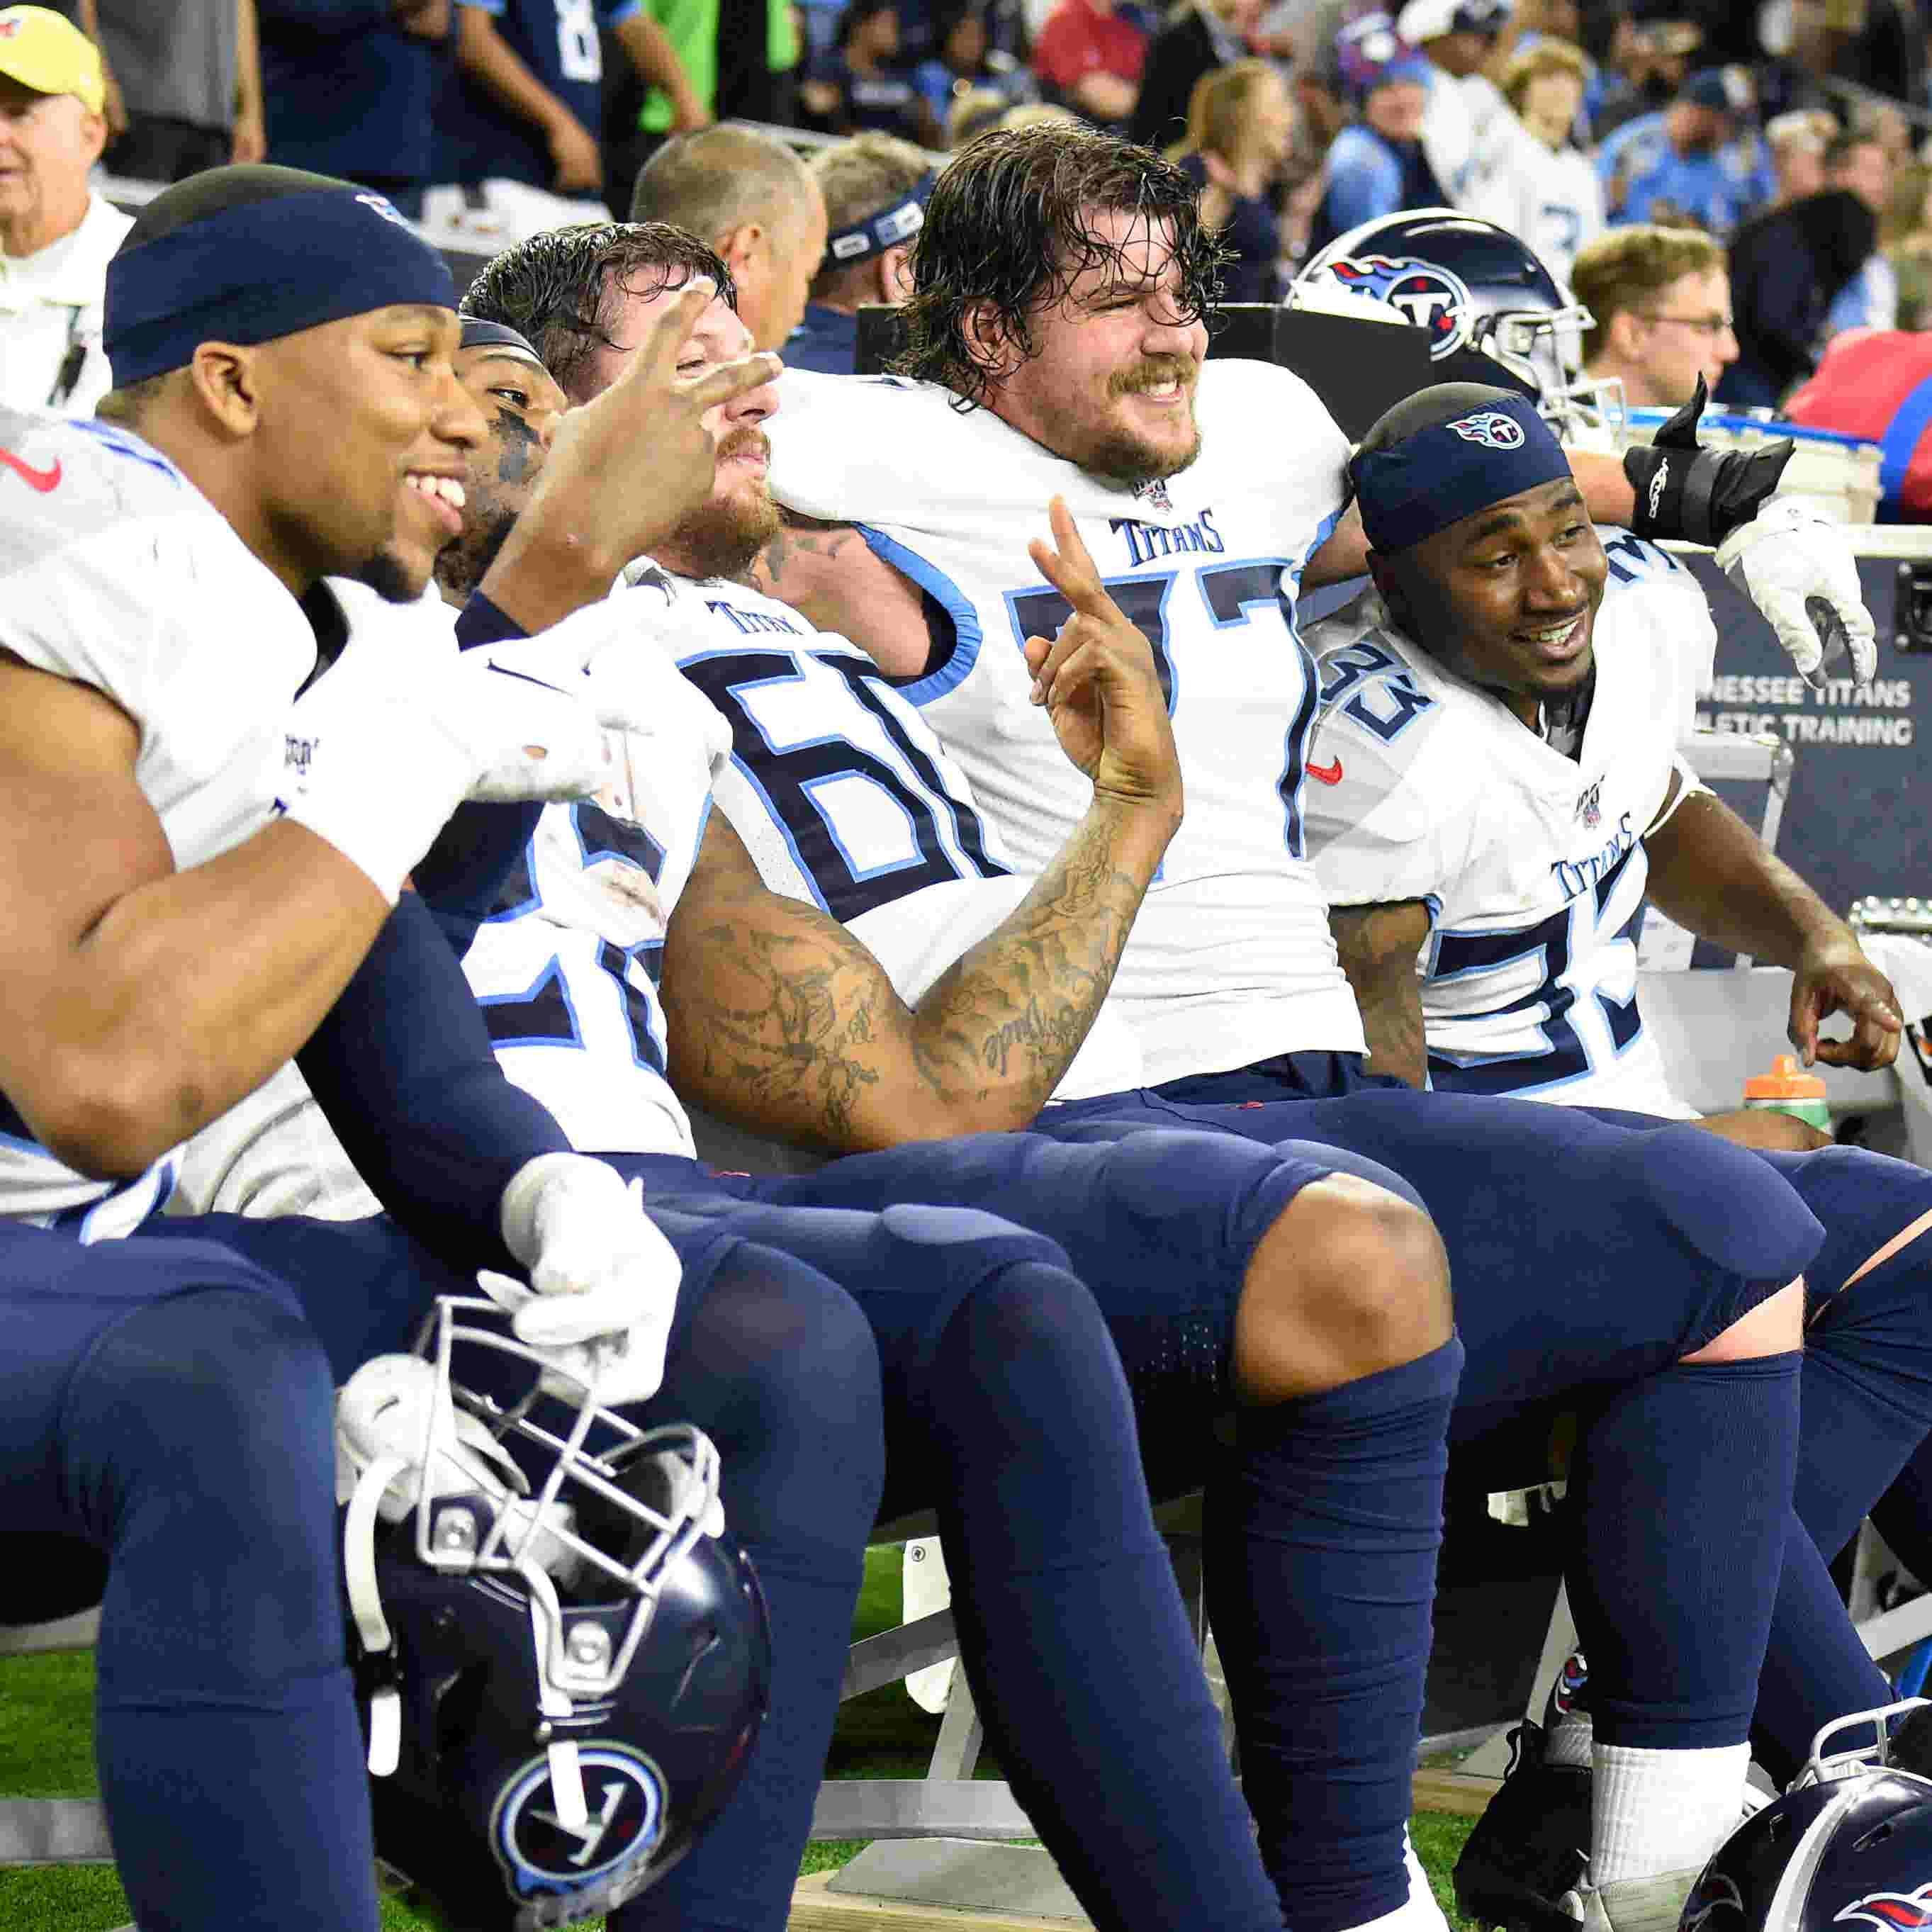 Watch: Titans players excited about playoff berth, trip to New England